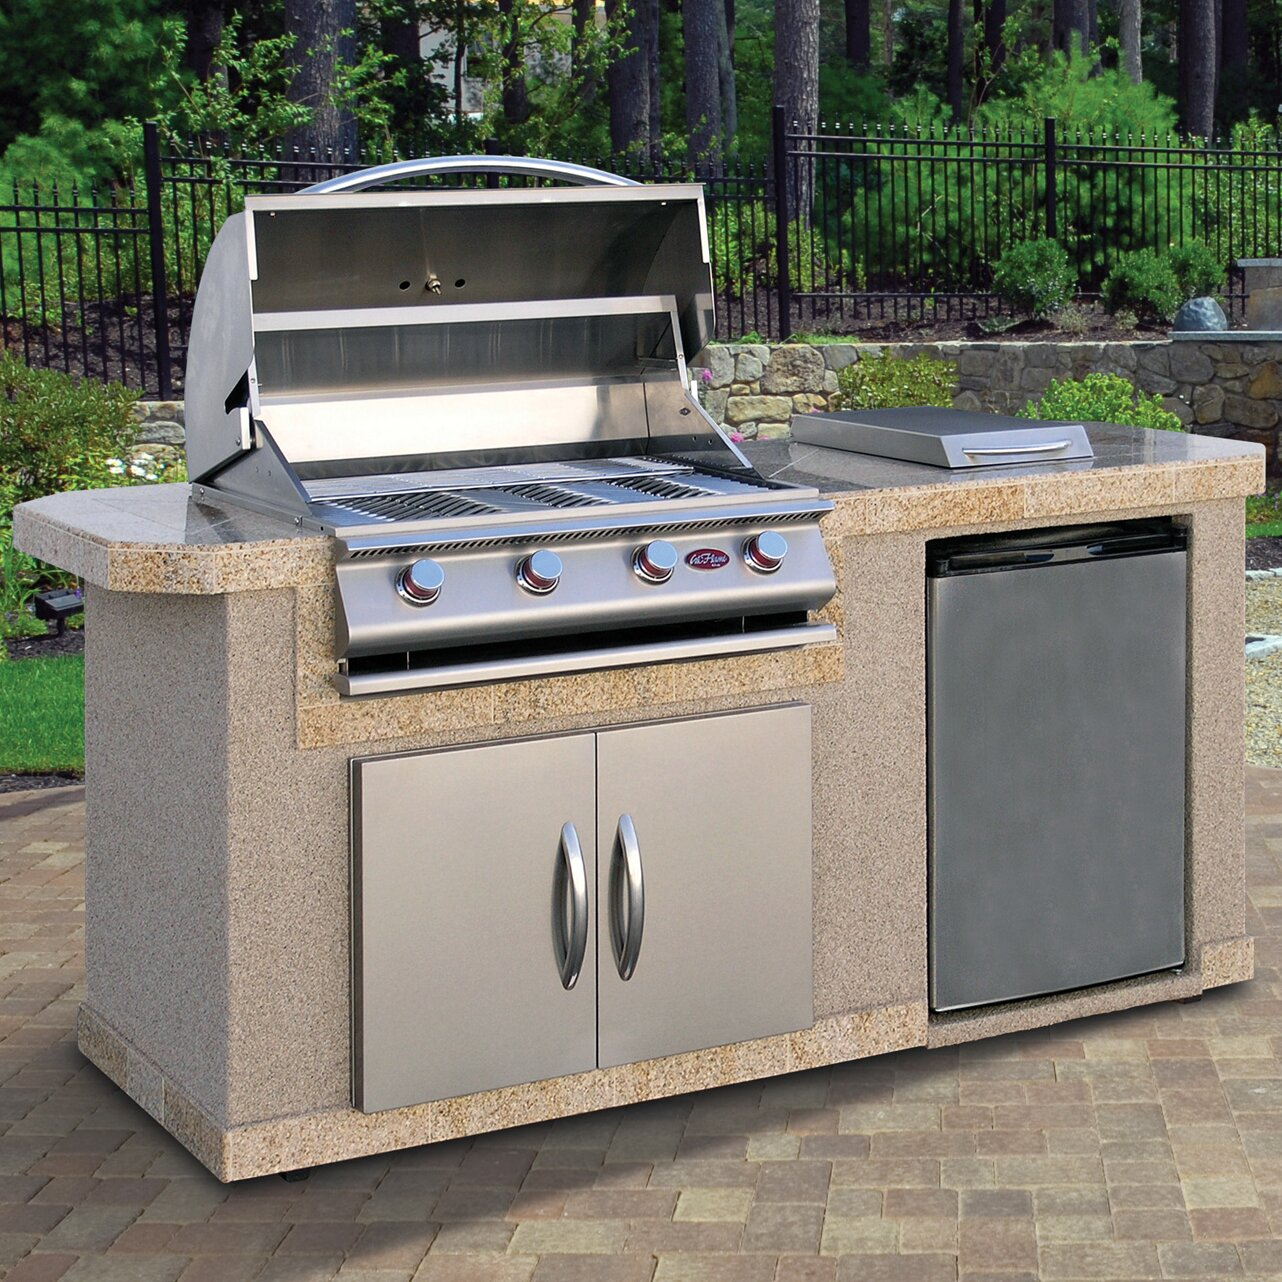 CalFlame Outdoor Kitchen Islands 4-Burner Built-In Propane Gas ...